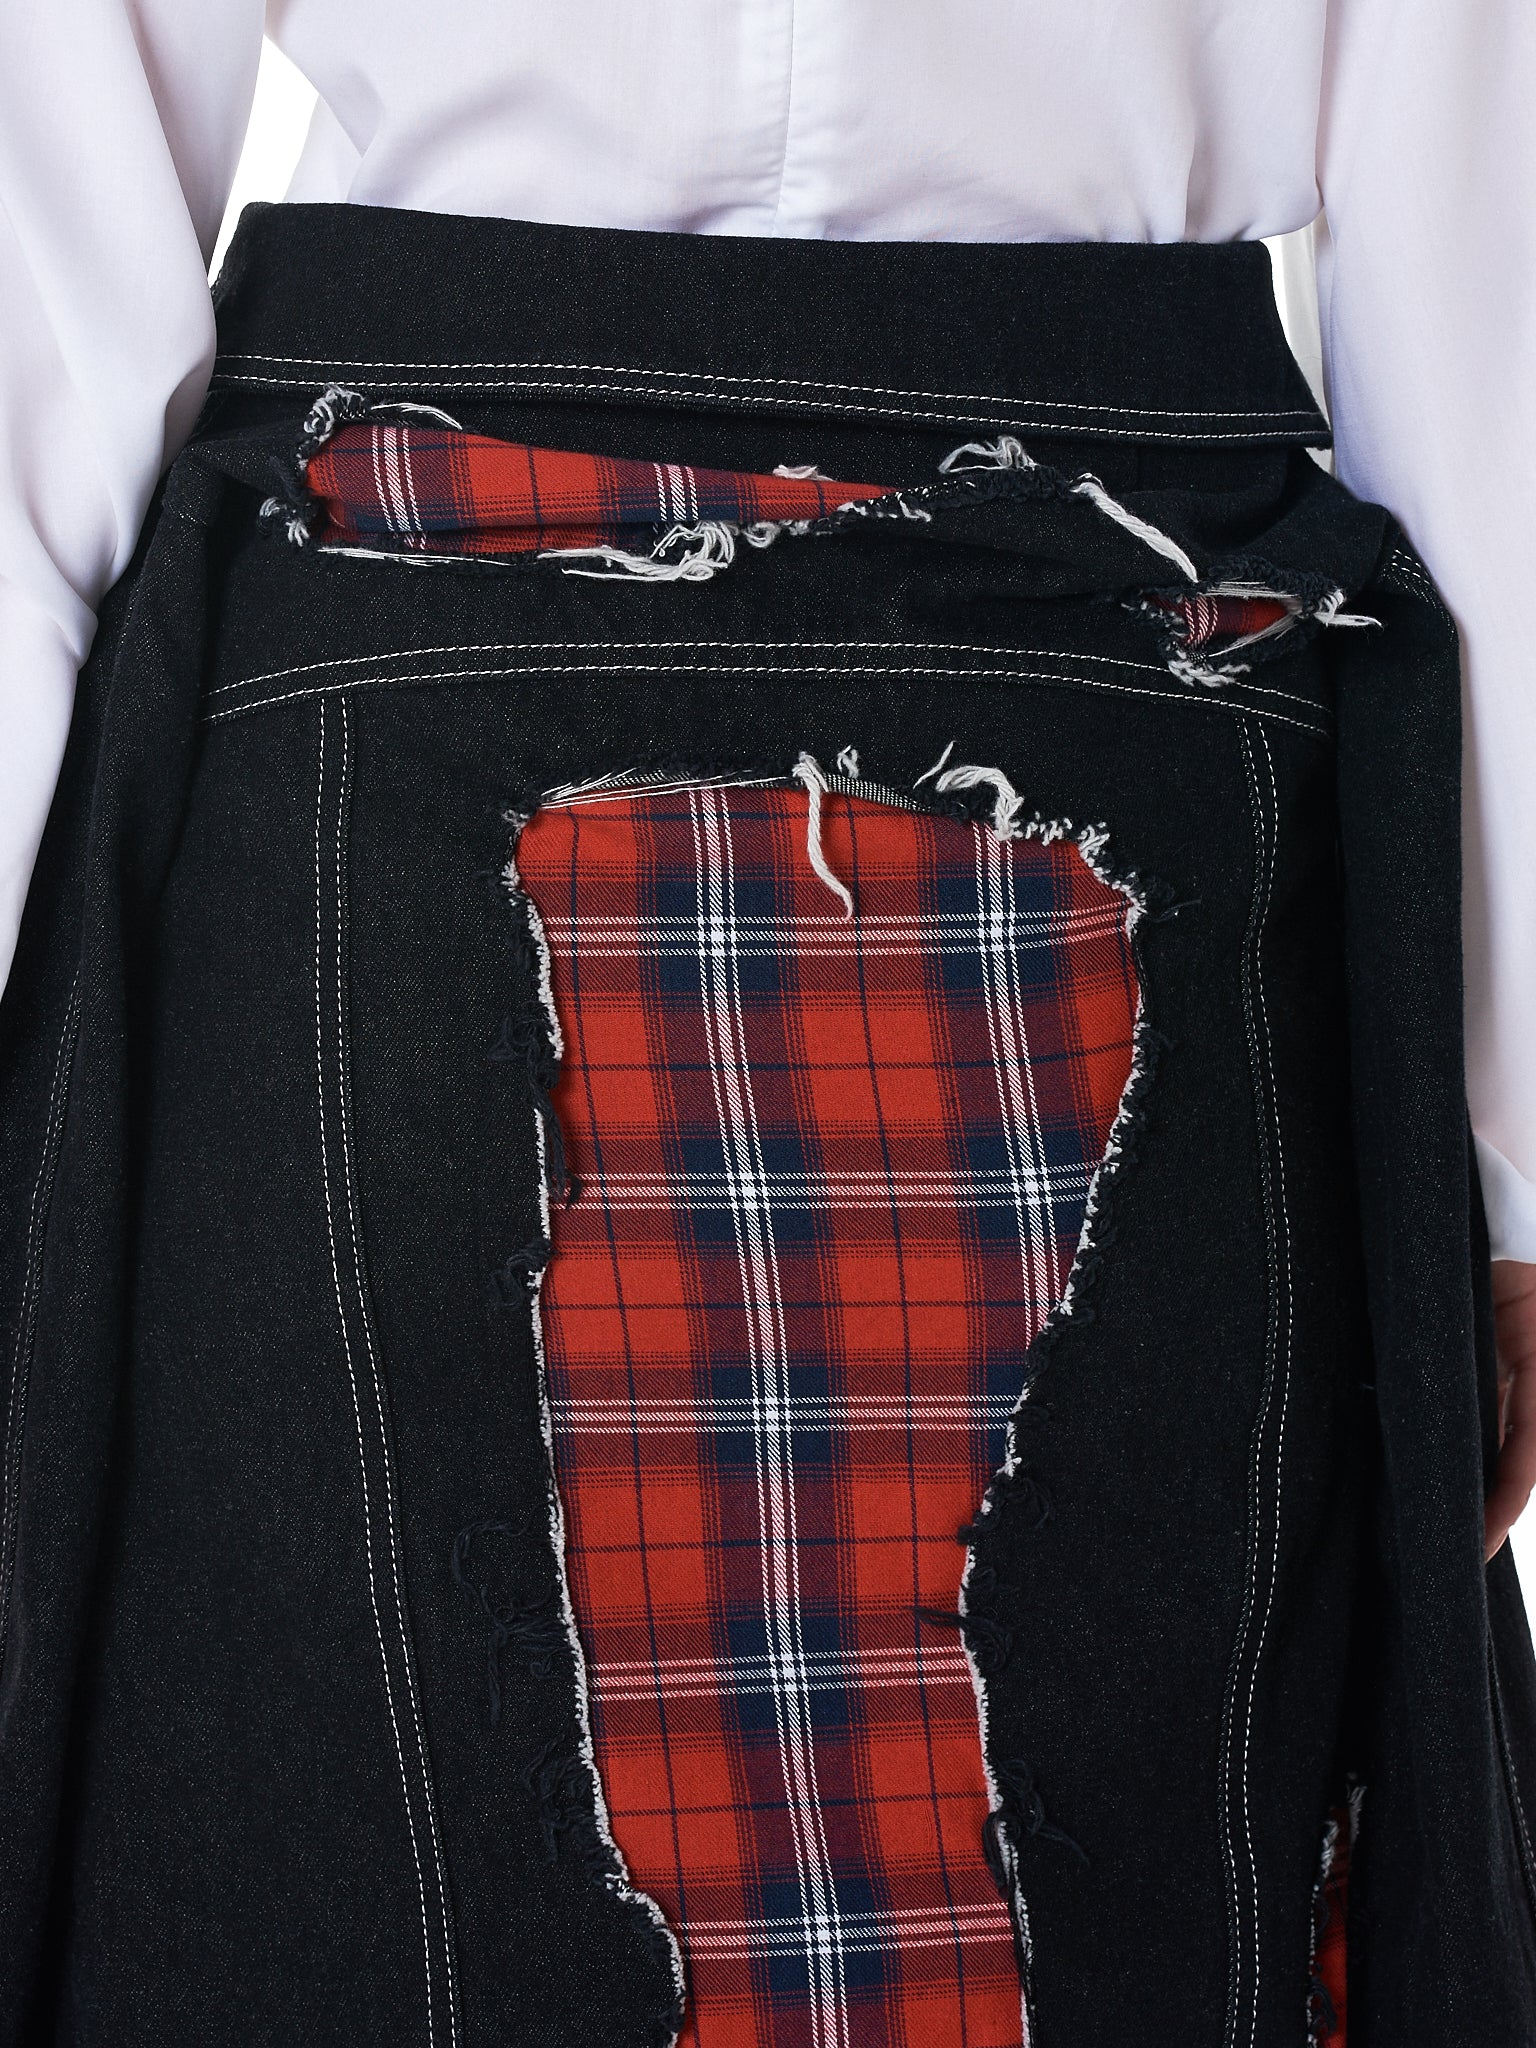 Patchwork Denim Skirt (BT-008-BLK-RED-CHECK)